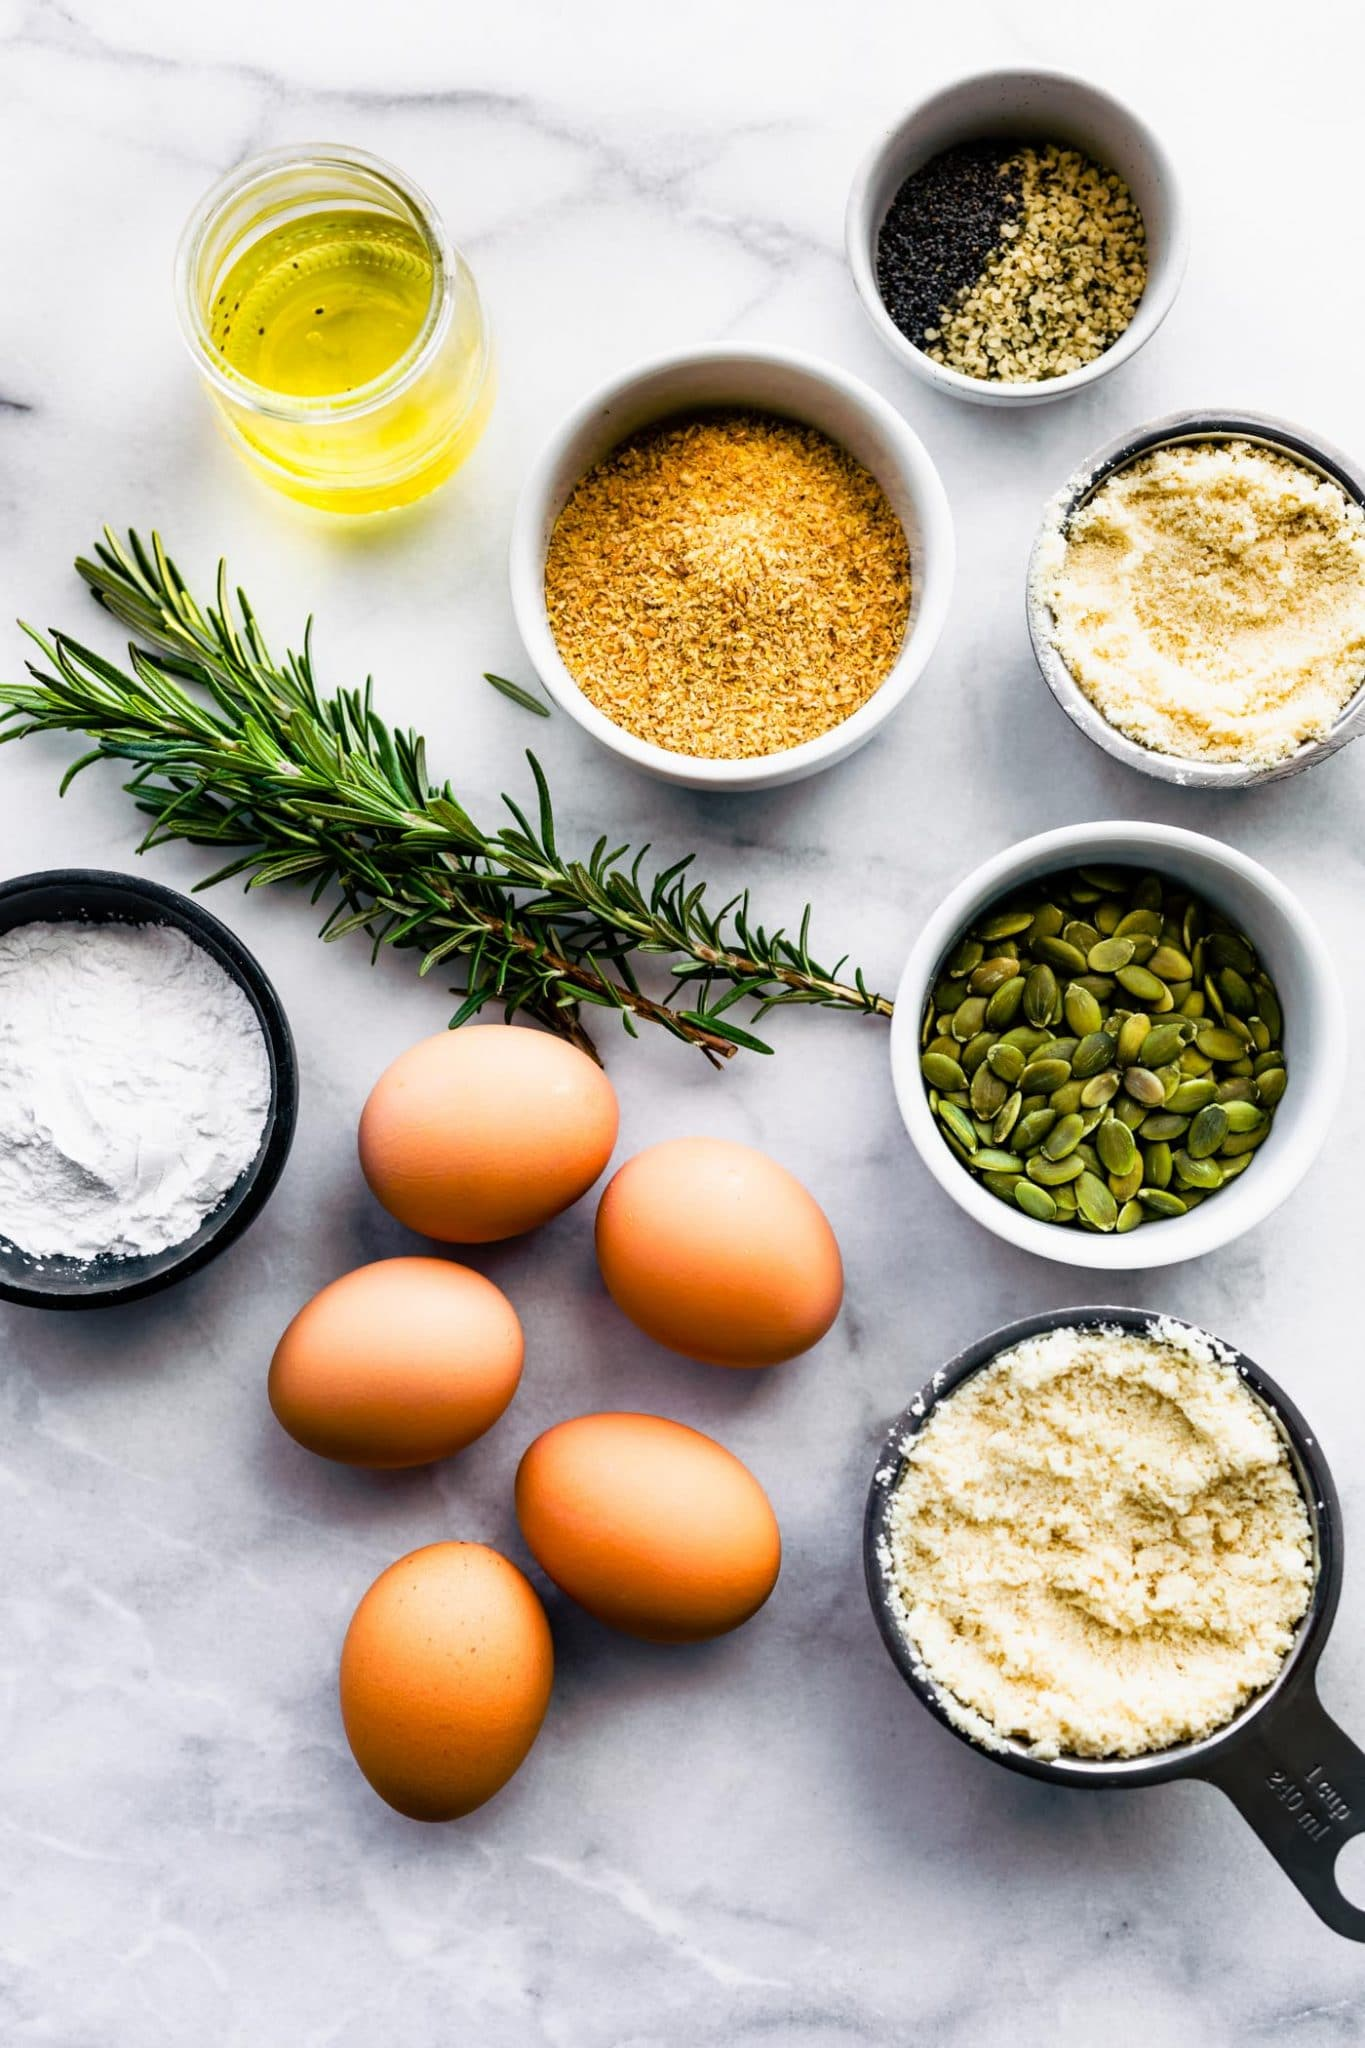 small ramekins of almond flour, tapioca starch, baking soda, flaxseed meal, eggs, pumpkin seeds, and rosemary on a white marble countertop